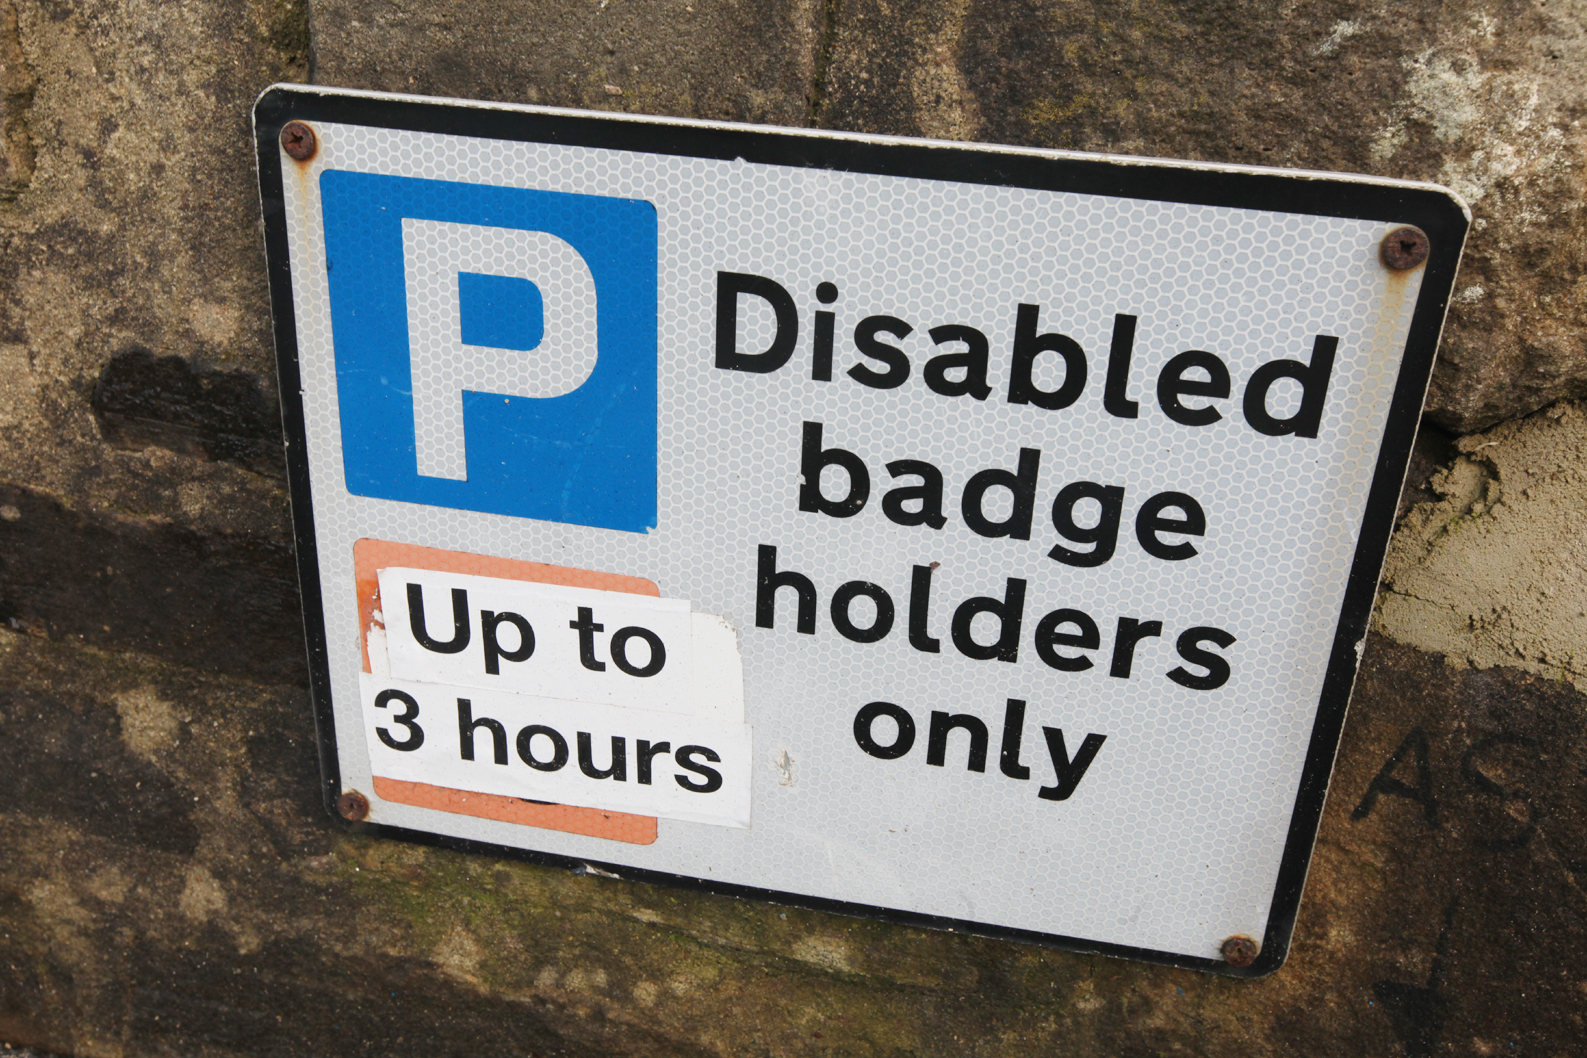 Aged 75 and told 'no blue badge'